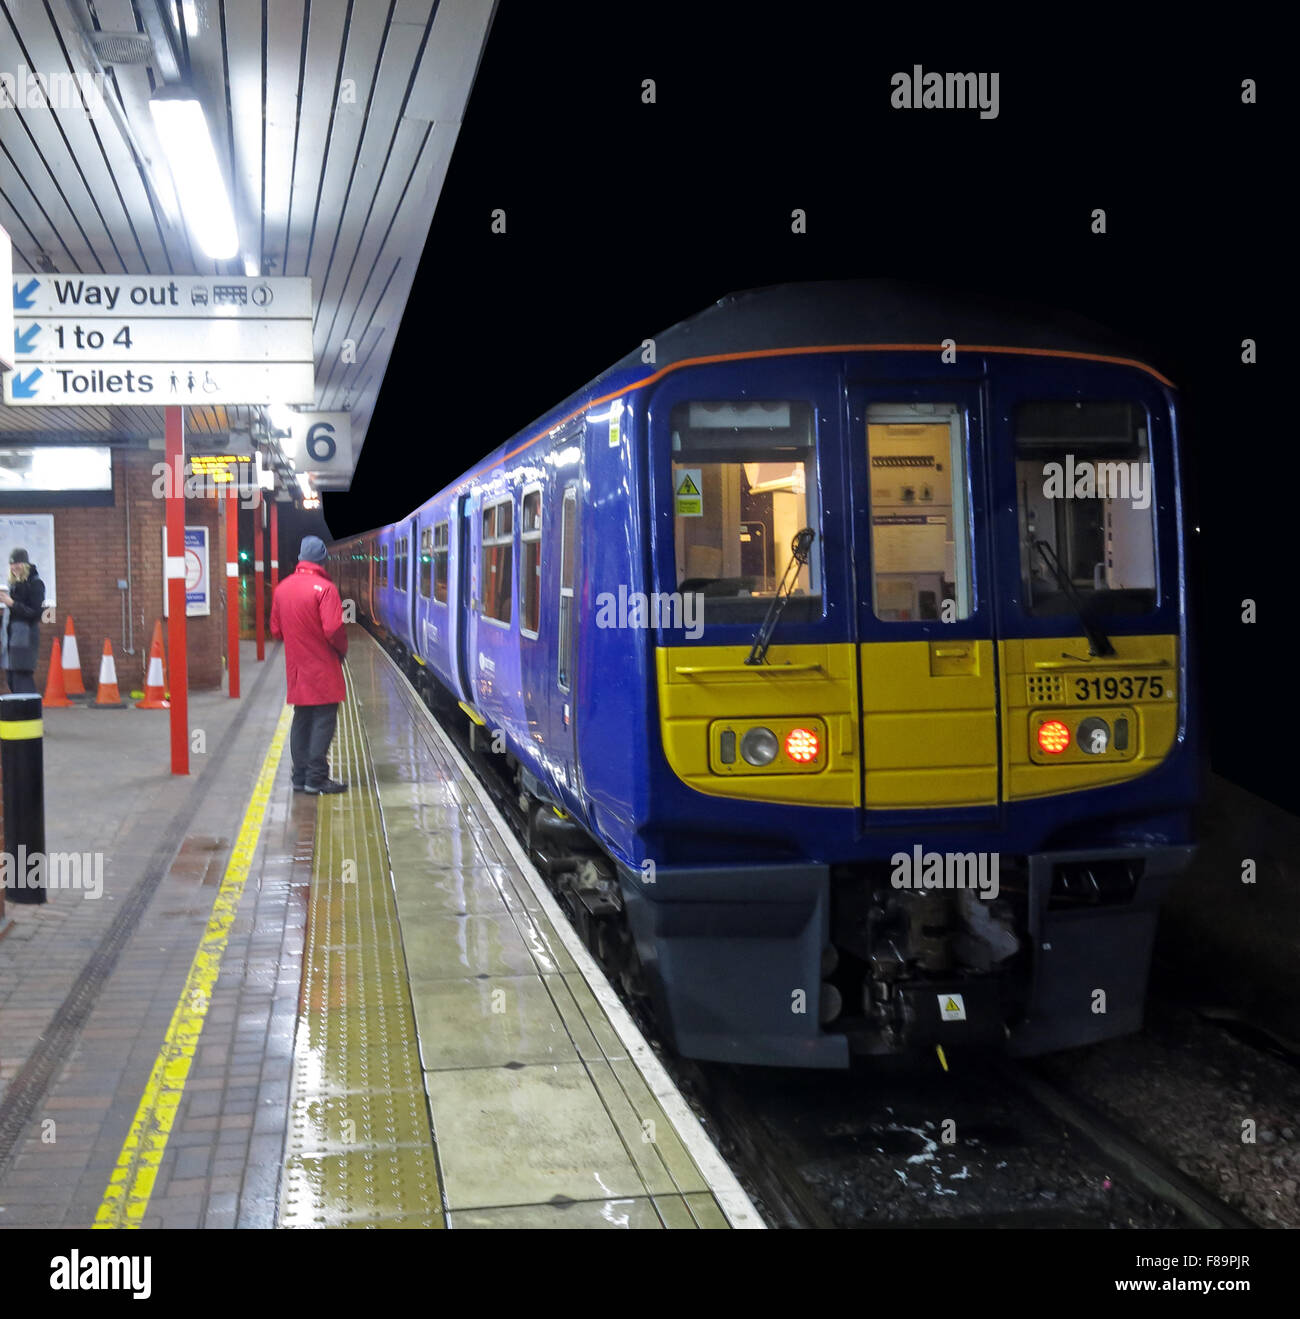 Lancashire,night,dusk,nighttime,time,platform,at,the,Station,Lancs,England,UK,GB,Great,Britain,logo,livery,rail,railway,franchise,TOC,train,operating,company,319375,class,319,Class319,Serco,Abellio,Abelio,United Kingdom,Northern Electric,Northern Rail,Class 319,Class 319 electric trains,GoTonySmith,service,paint,paintwork,NorthWest,Buy Pictures of,Buy Images Of